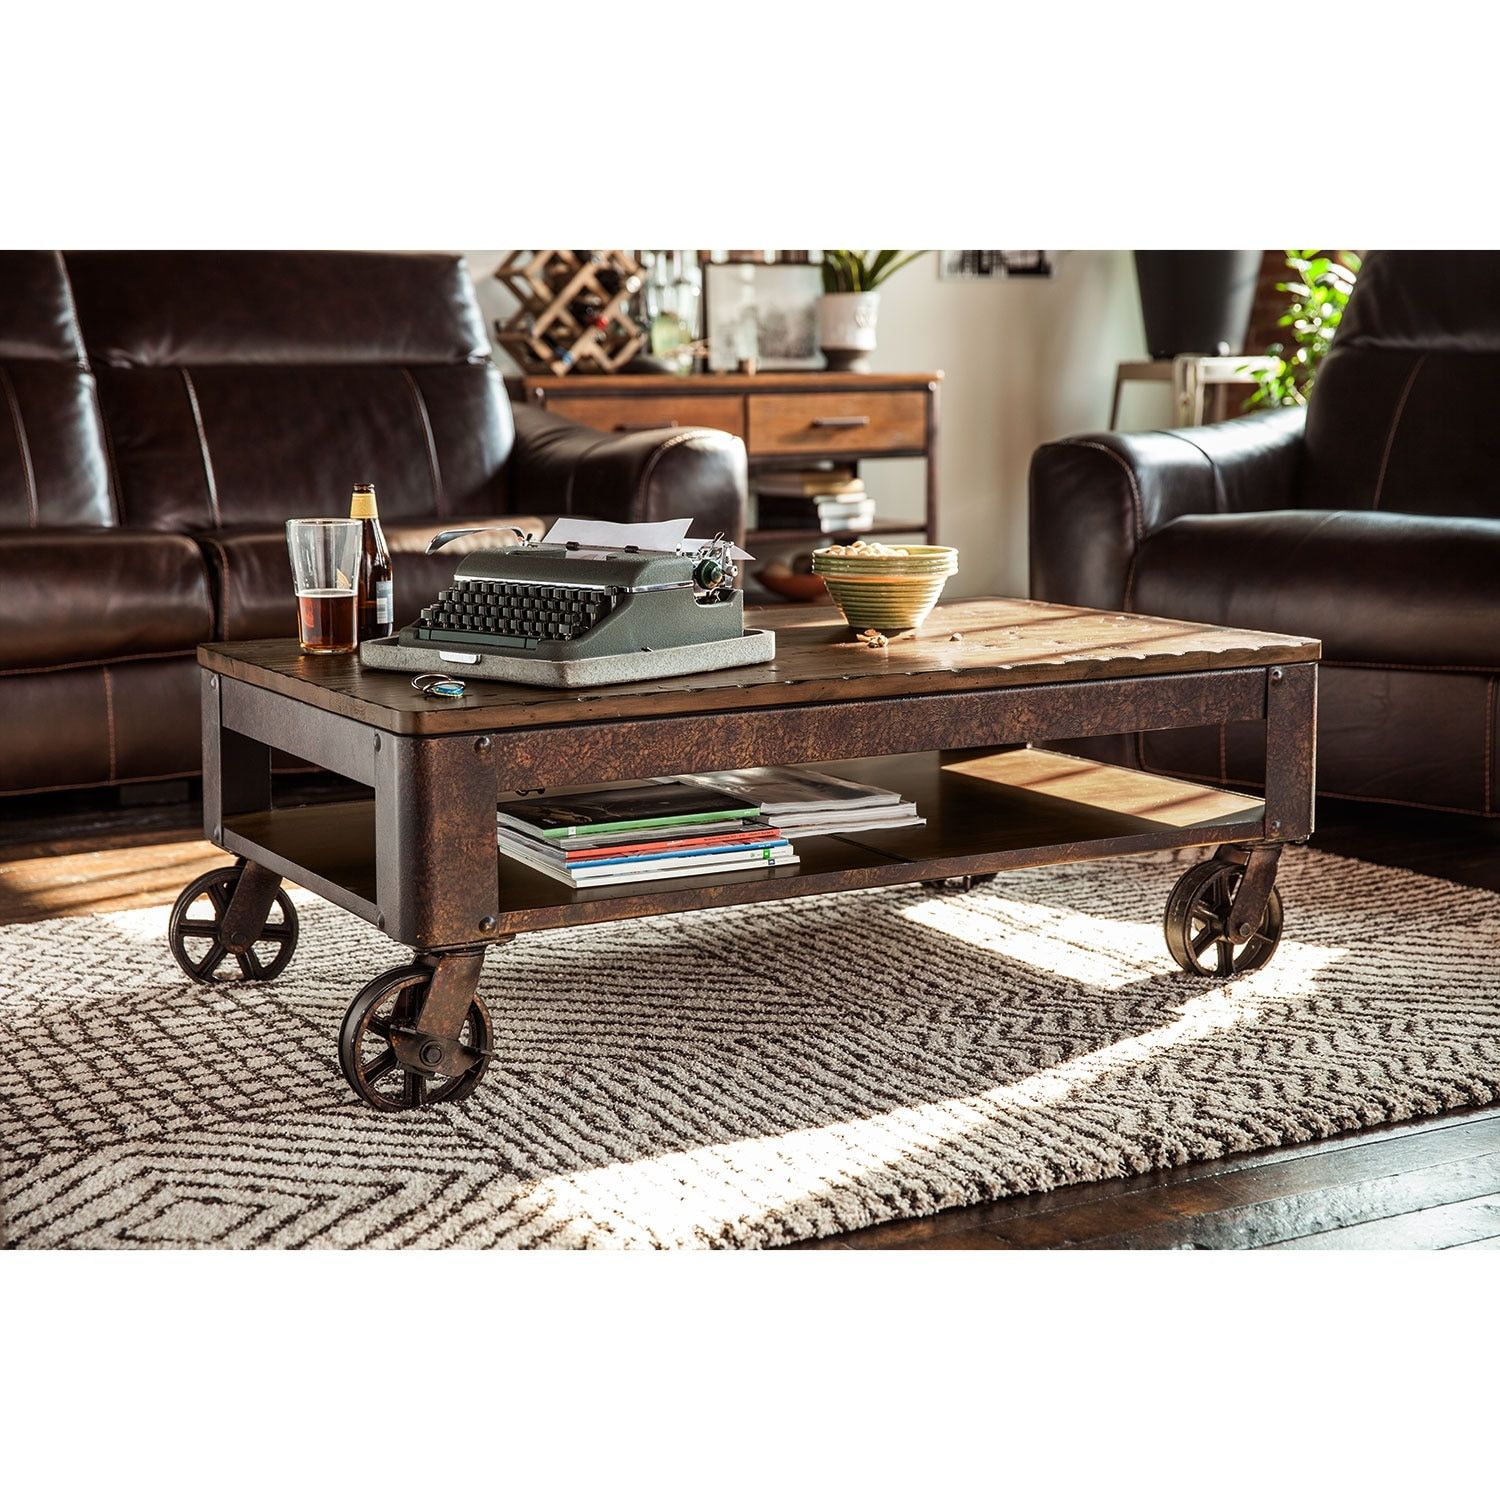 Shortline LiftTop Coffee Table Coffee table, Lift top